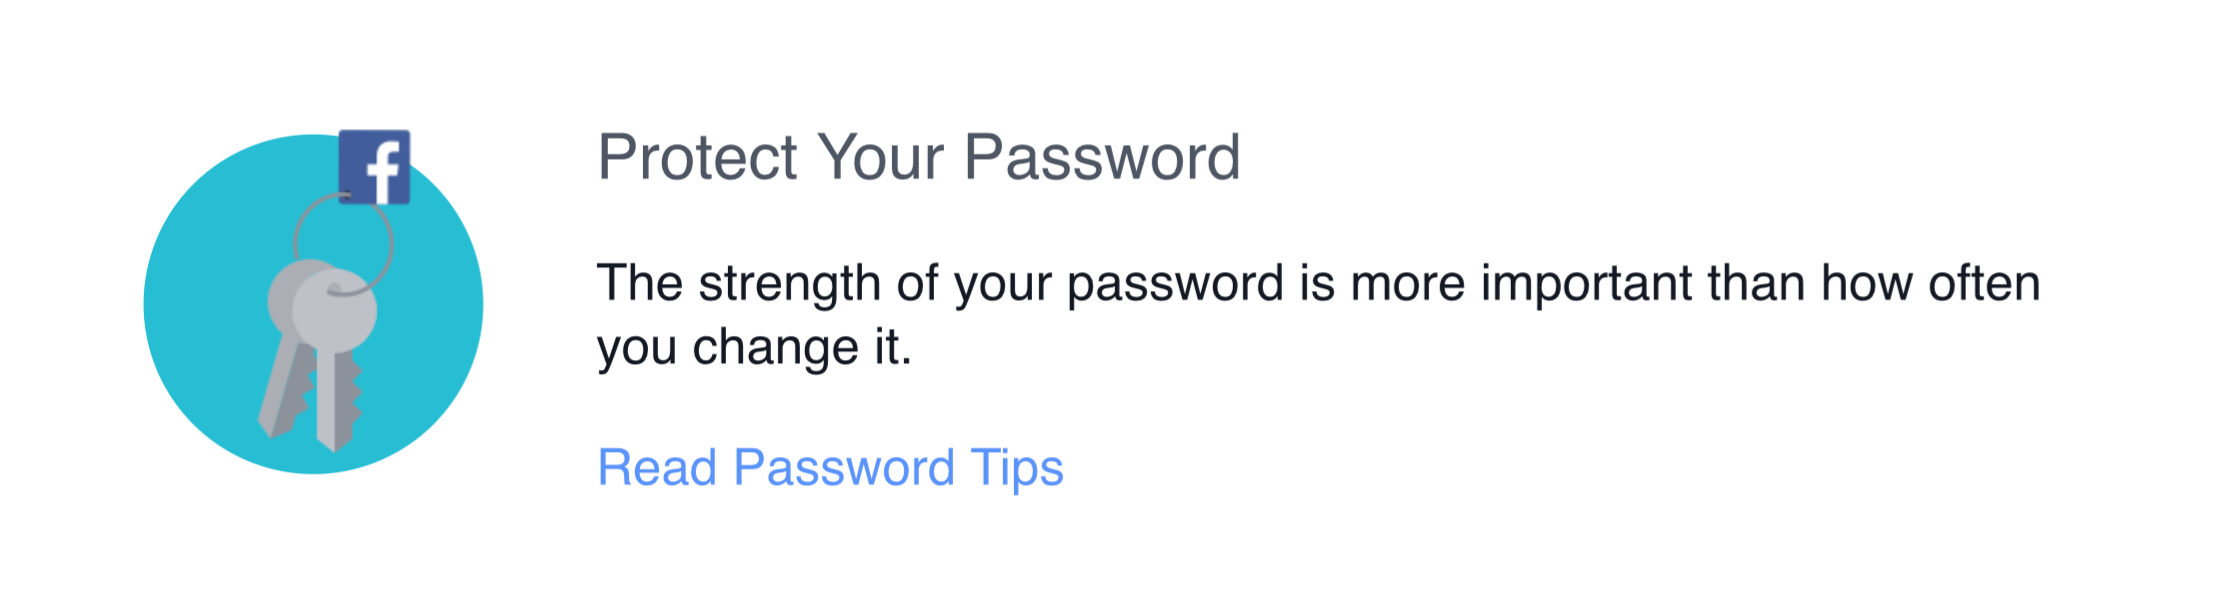 Protect Your Password